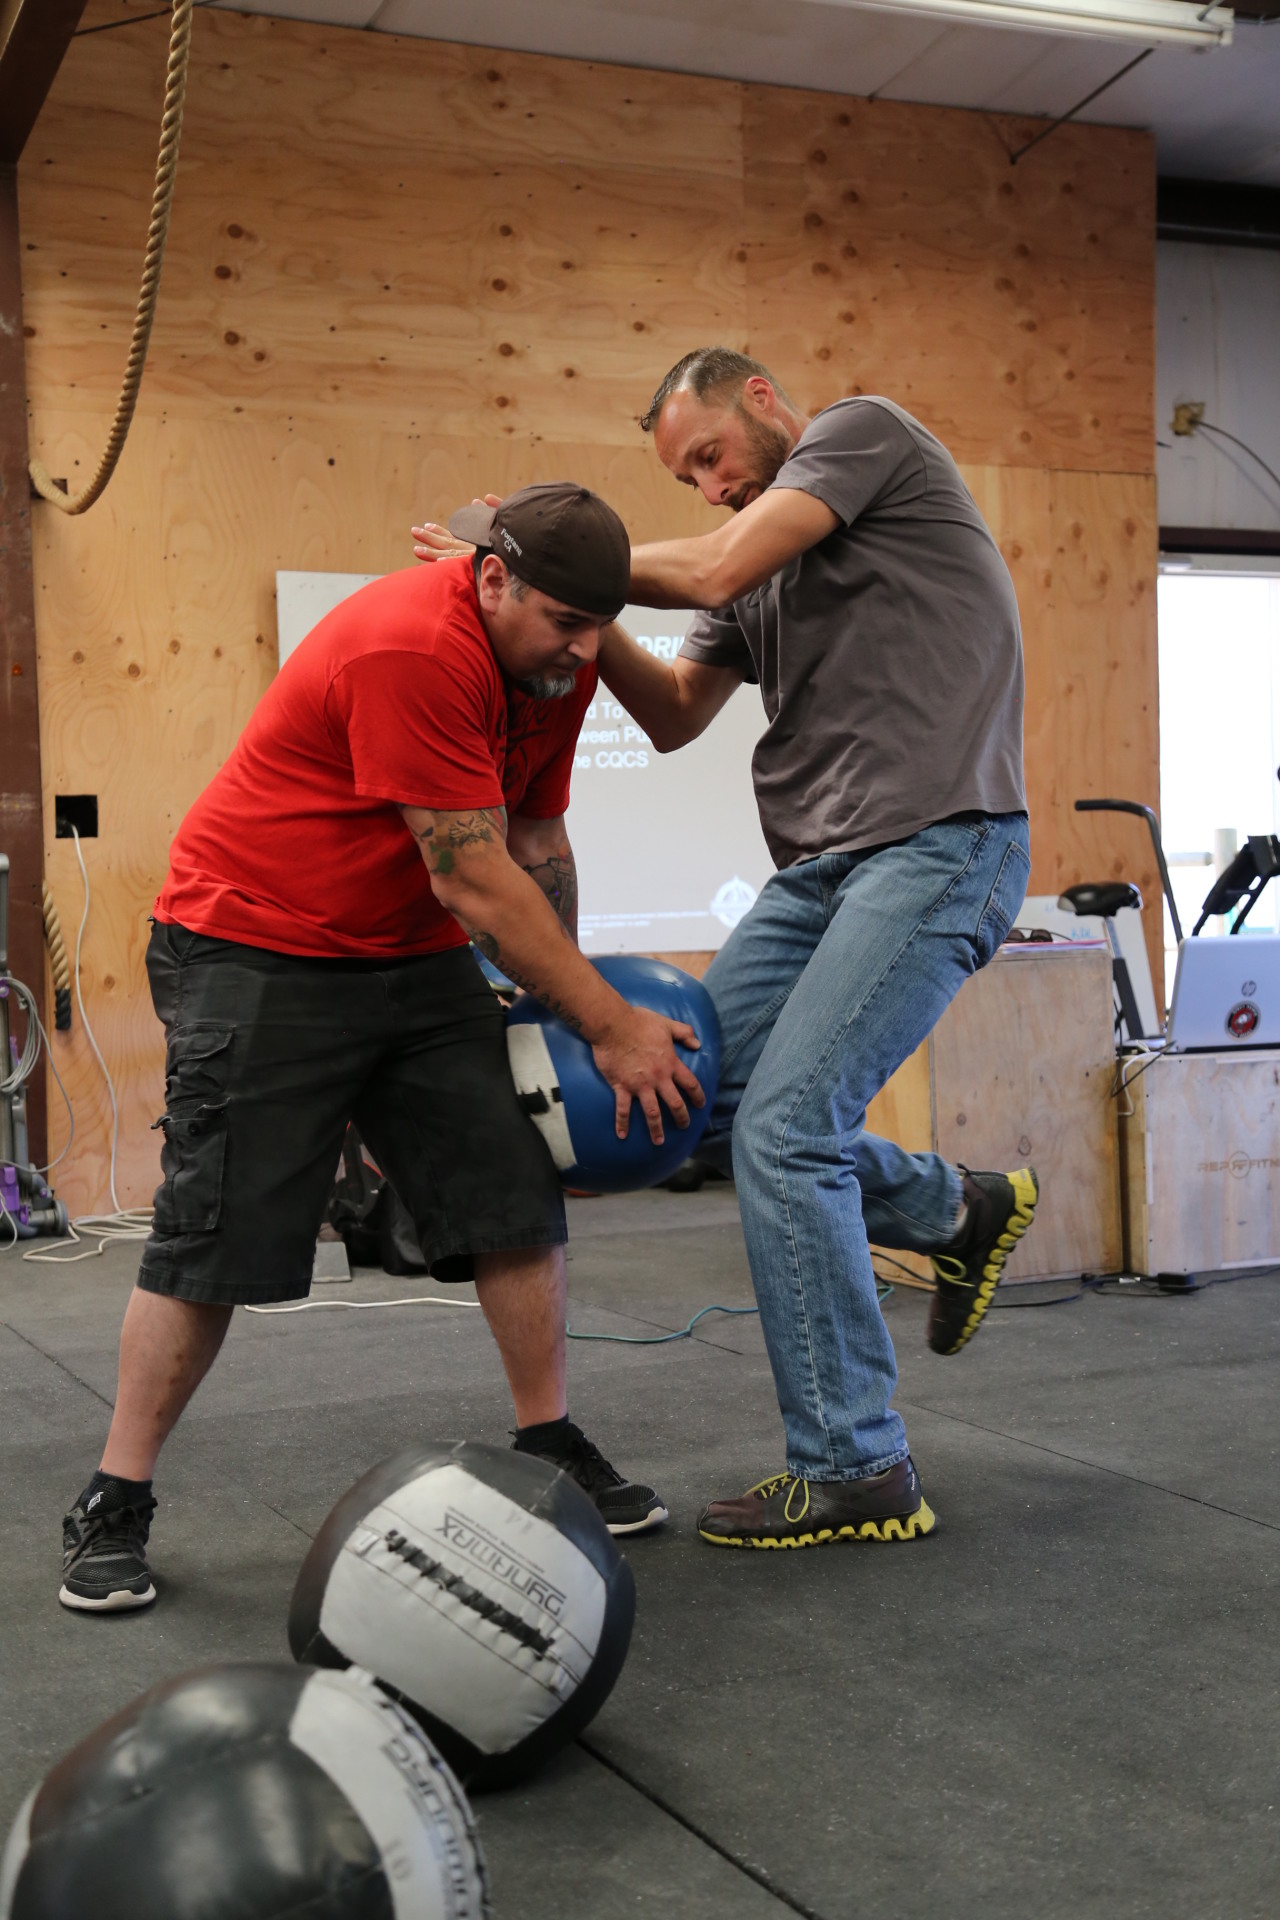 Finnegan Security Solutions, Self Defense, Self-Defense, MMA, martial arts, Lancaster, Palmdale, Rosamond, Blauer Tactical Systems, Tony Blauer, BTS, SPEAR,  Rape Defense, security training, corporate security, active shooter, active shooter training, first aid, CPR, team building, fear, fear management, teen self defense, bully defense, anti bully, anti-bully, violence, Los Angles, Los Angles County, Santa Clarita, home security, residential security, mixed martial arts, boxing. pepper spray, trauma, medical, preparation, security,  Tehachapi, California City, Kern County